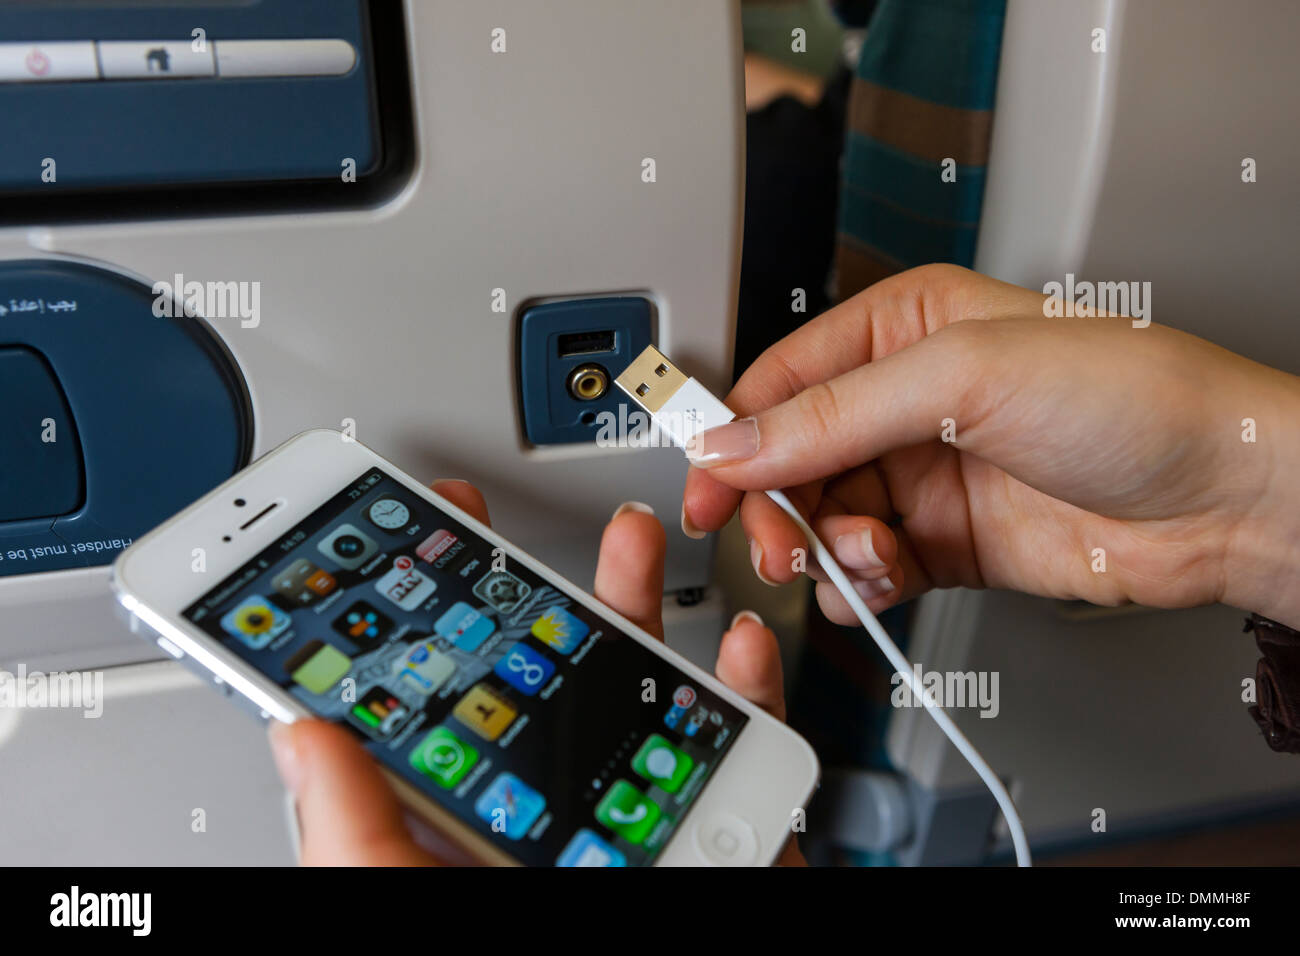 Smart phone and USB socket in airplane seat - Stock Image